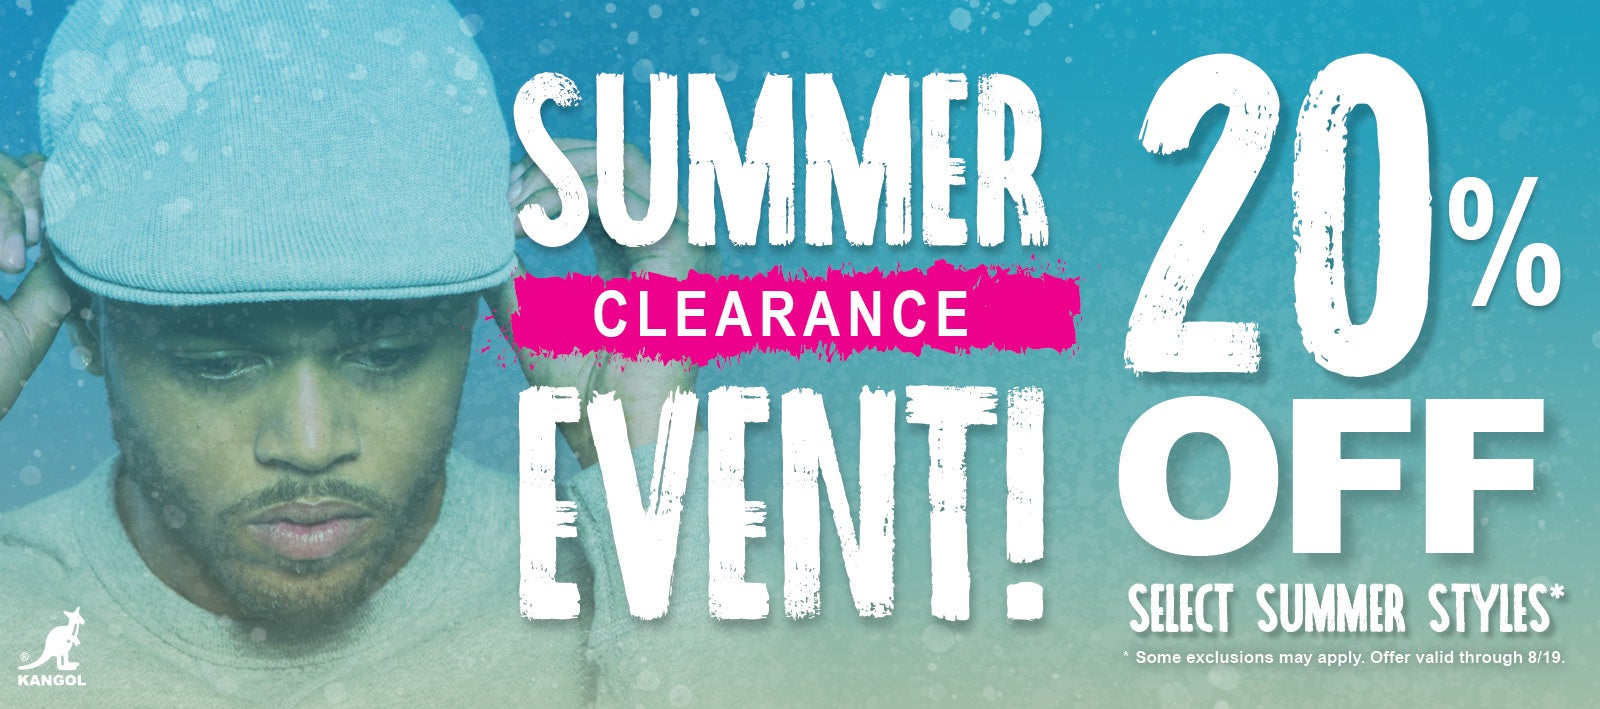 Shop Our Summer Clearance Event